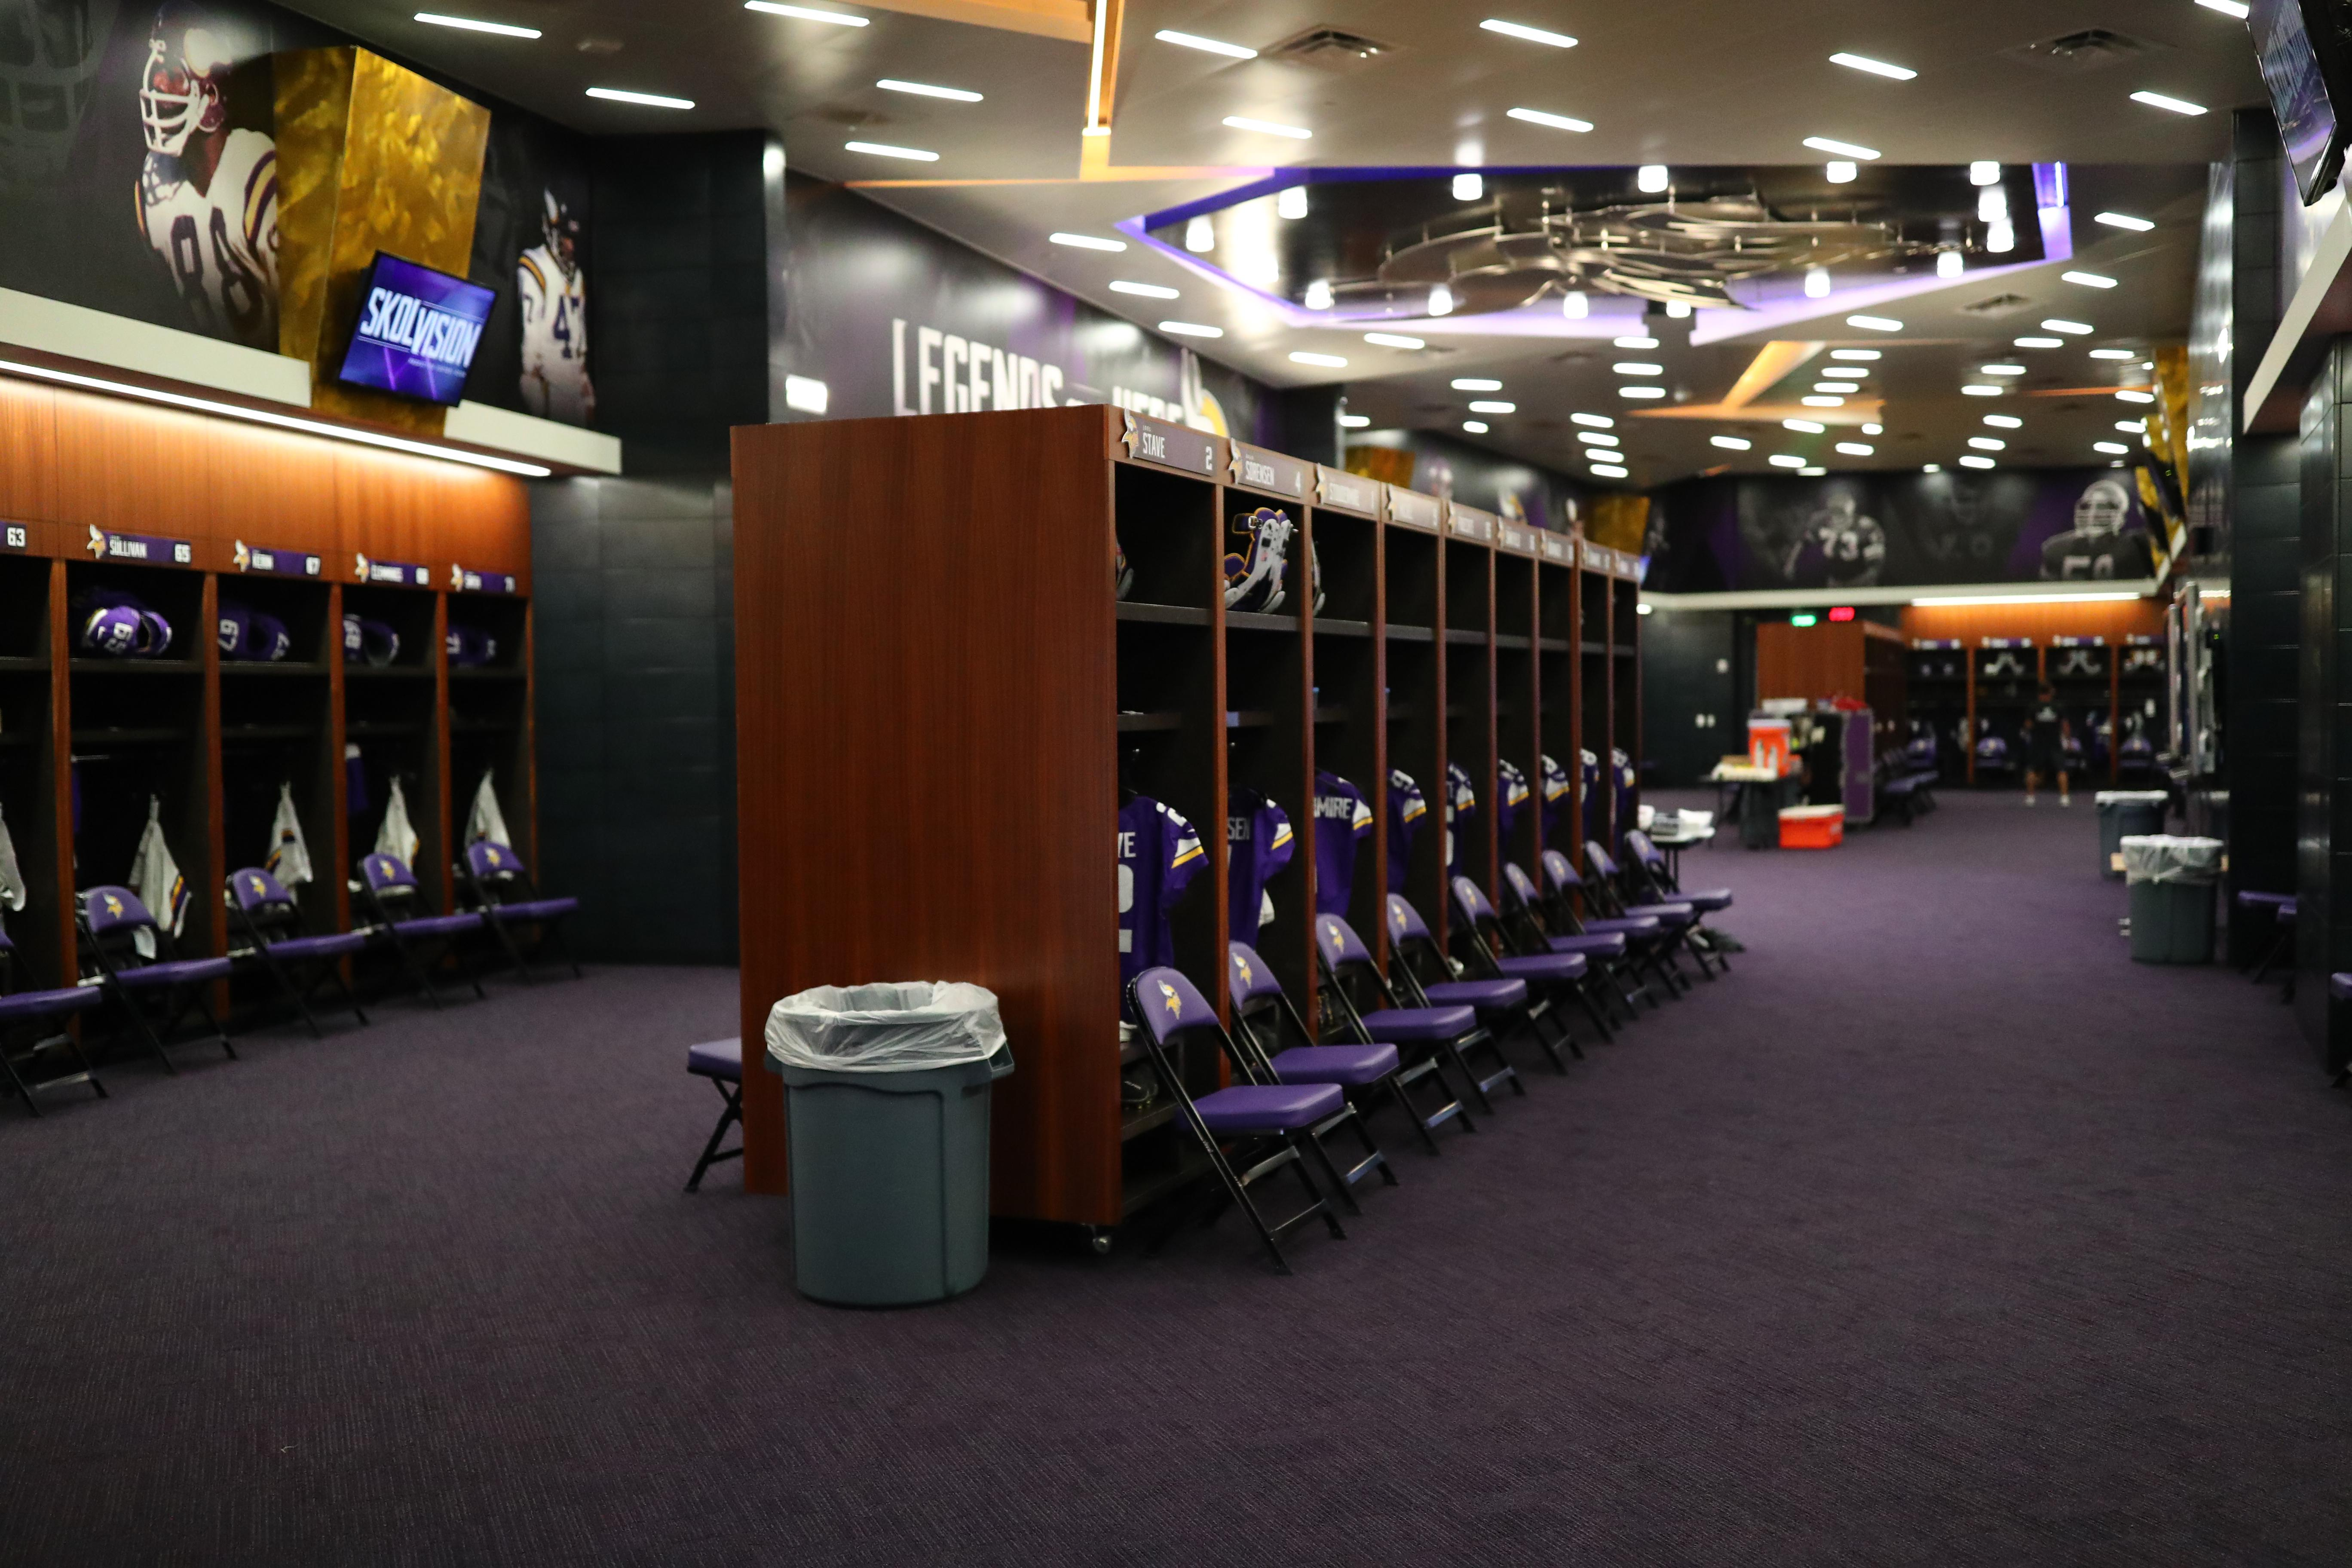 The locker rooms at US Bank Stadium are some of the most luxurious anywhere in the world